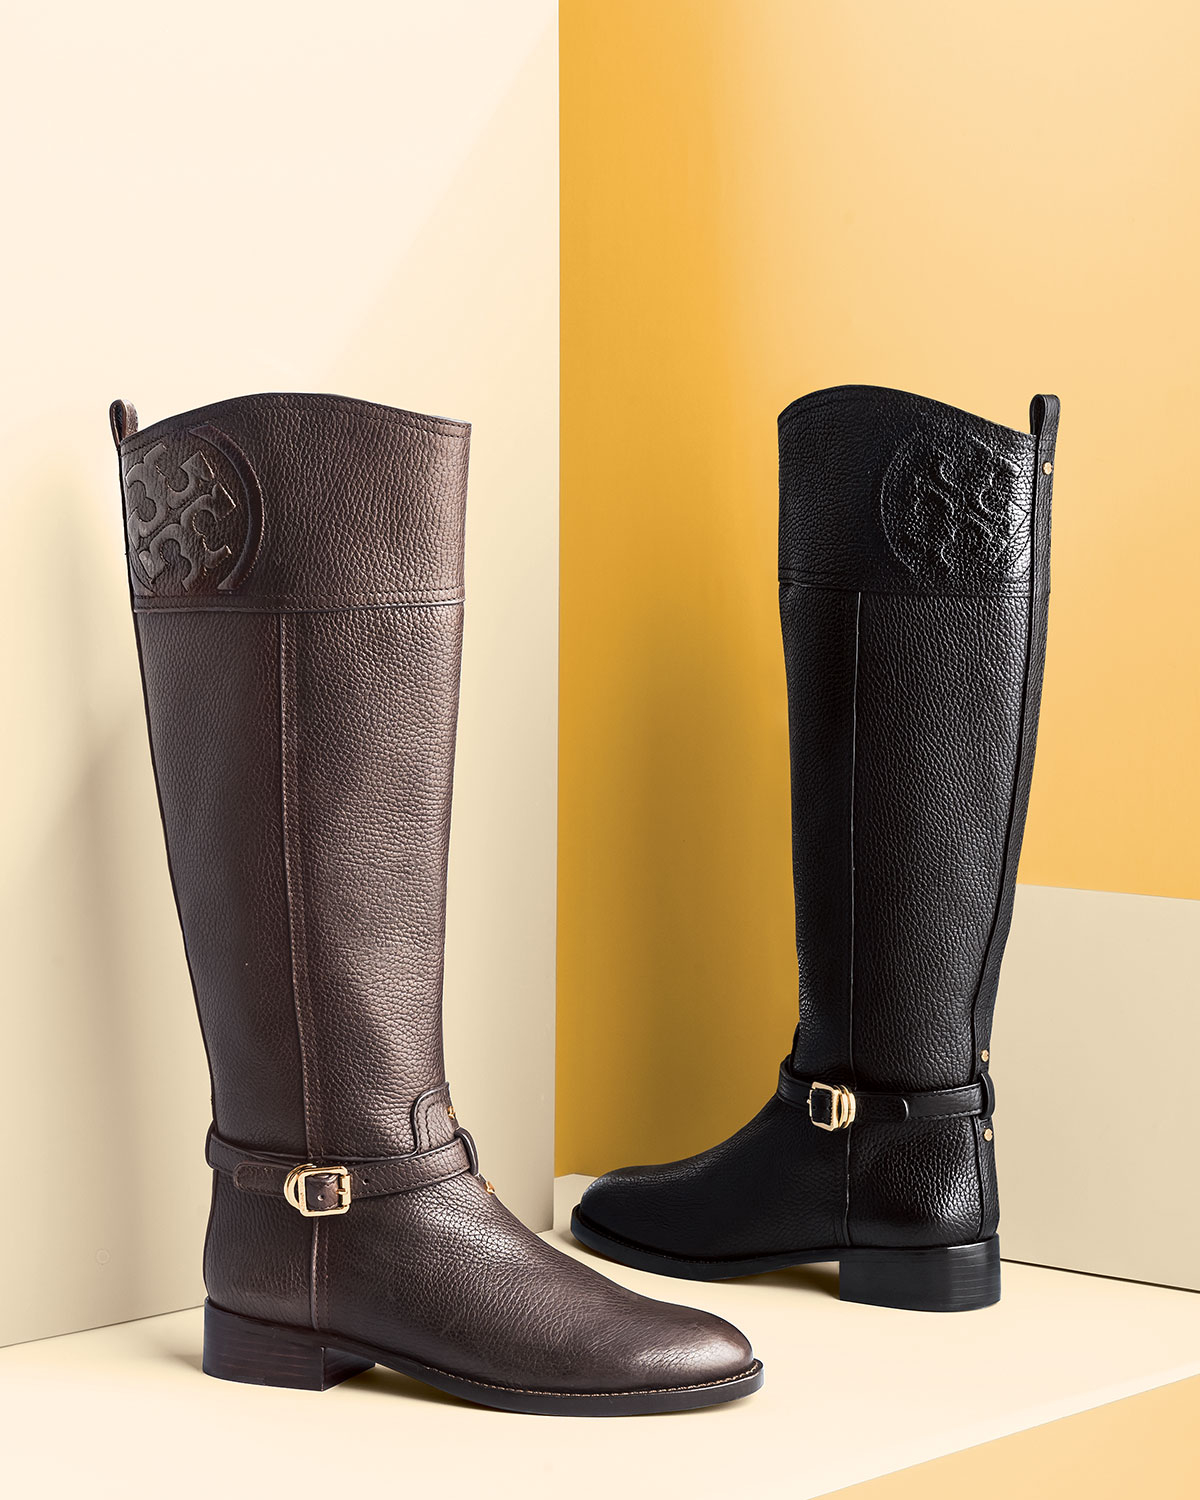 Tory burch Marlene Leather Riding Boot in Brown | Lyst